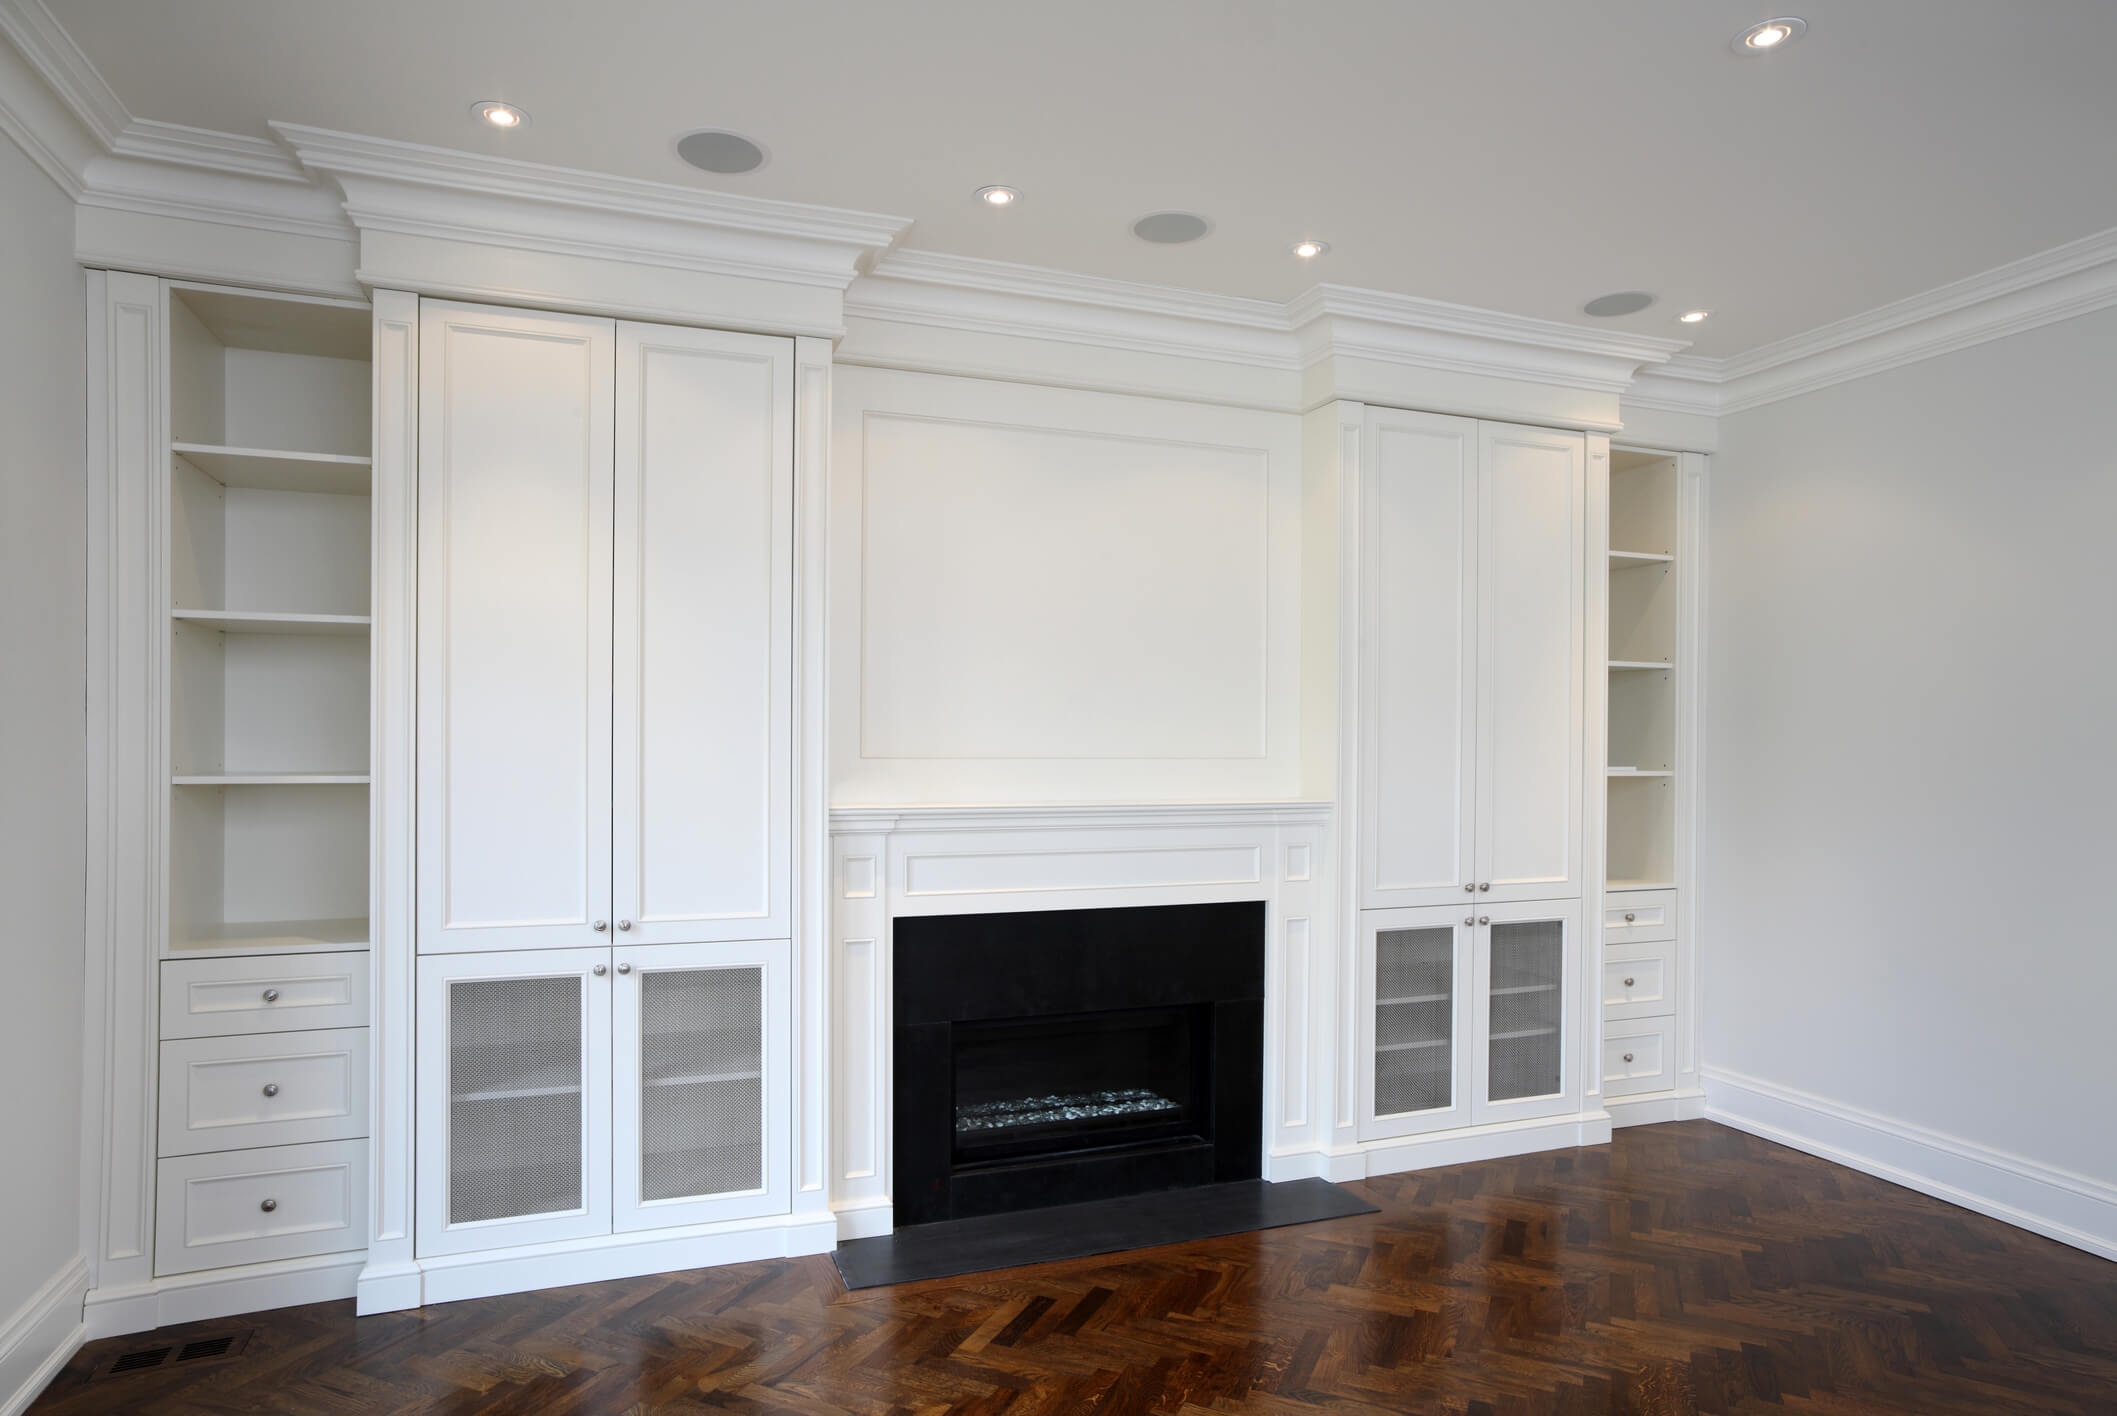 Fitted Furniture, Shelfs, Cupboards, Drawers, Fireplace, Bespoke Furniture, Elegant Bespoke Living